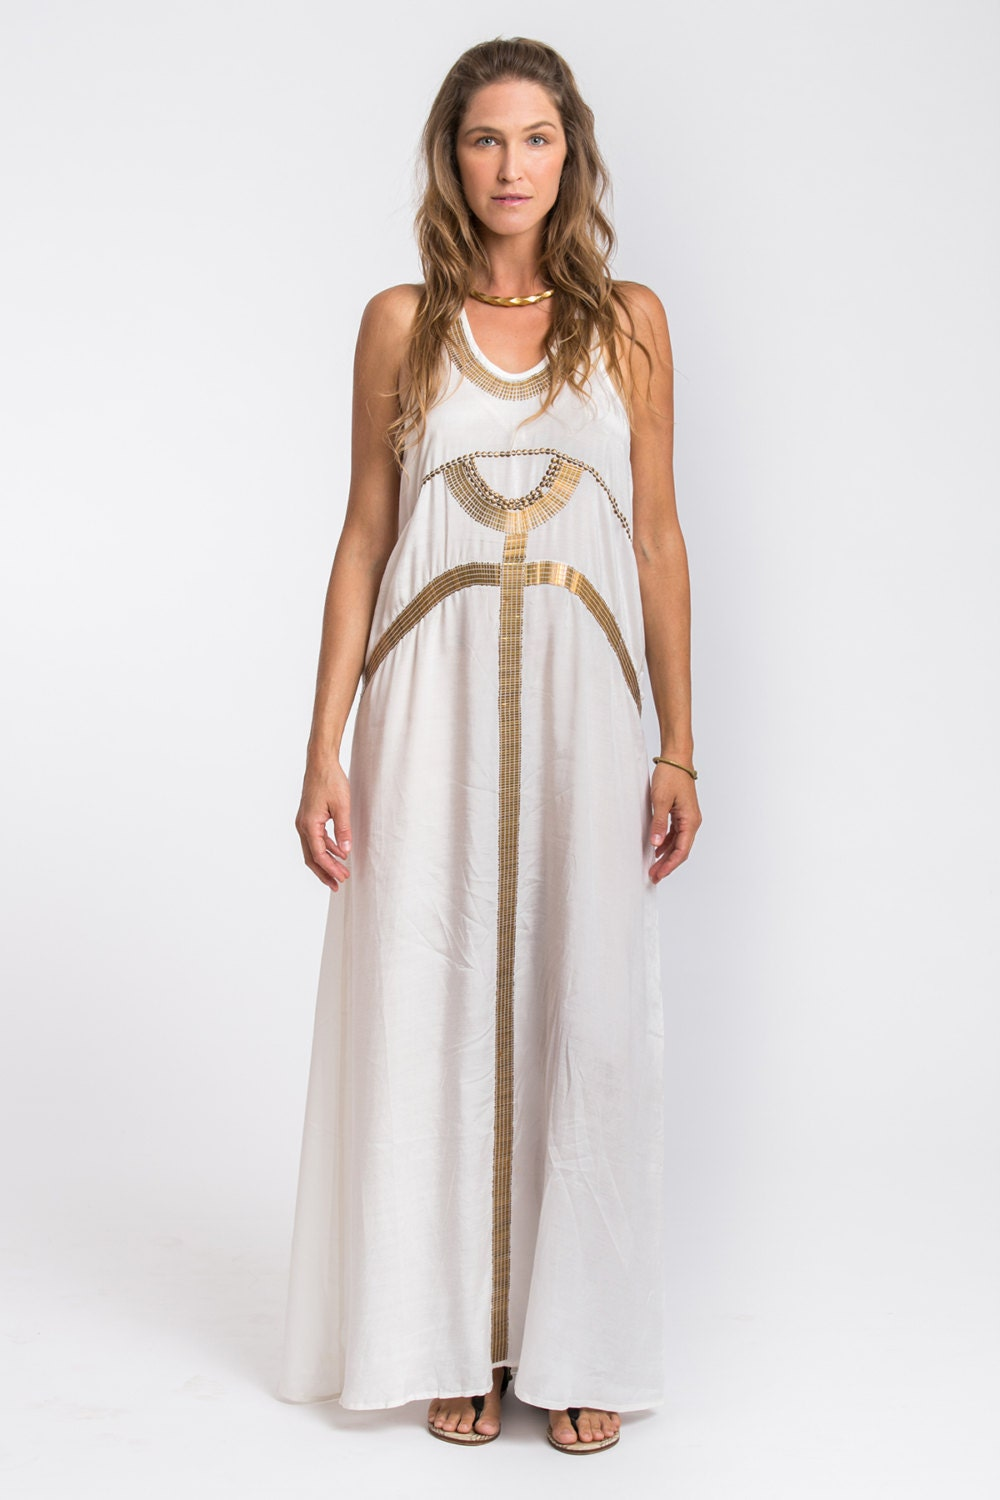 Egyptian Evening Dress